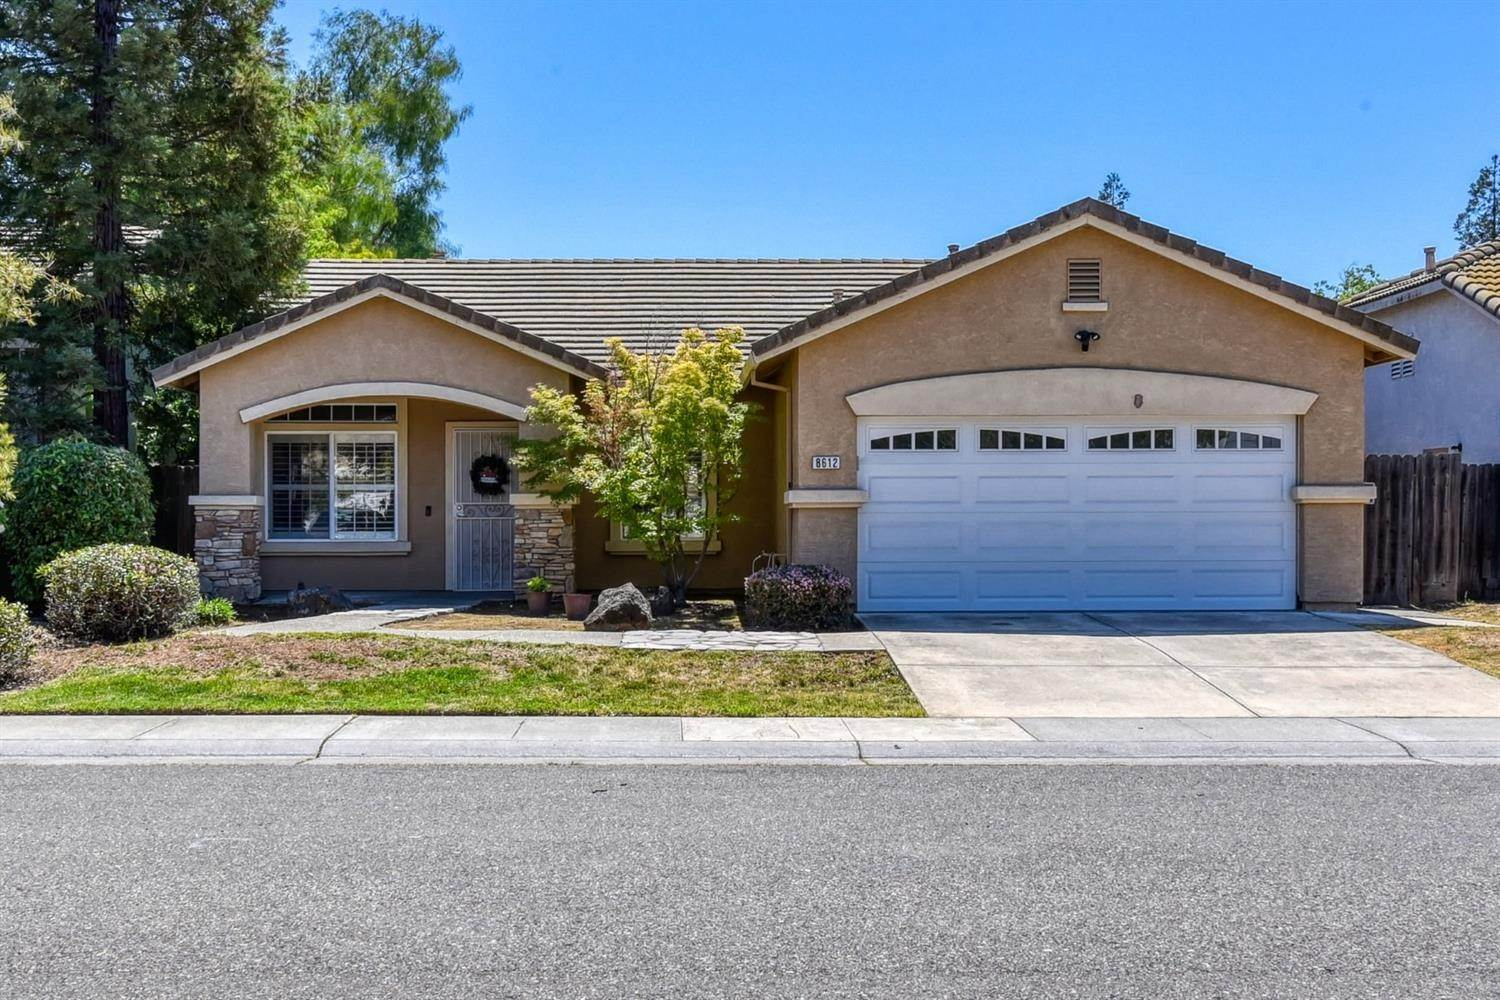 Single Family Homes for Active at 8612 Golden Sage Drive Elk Grove, California 95624 United States